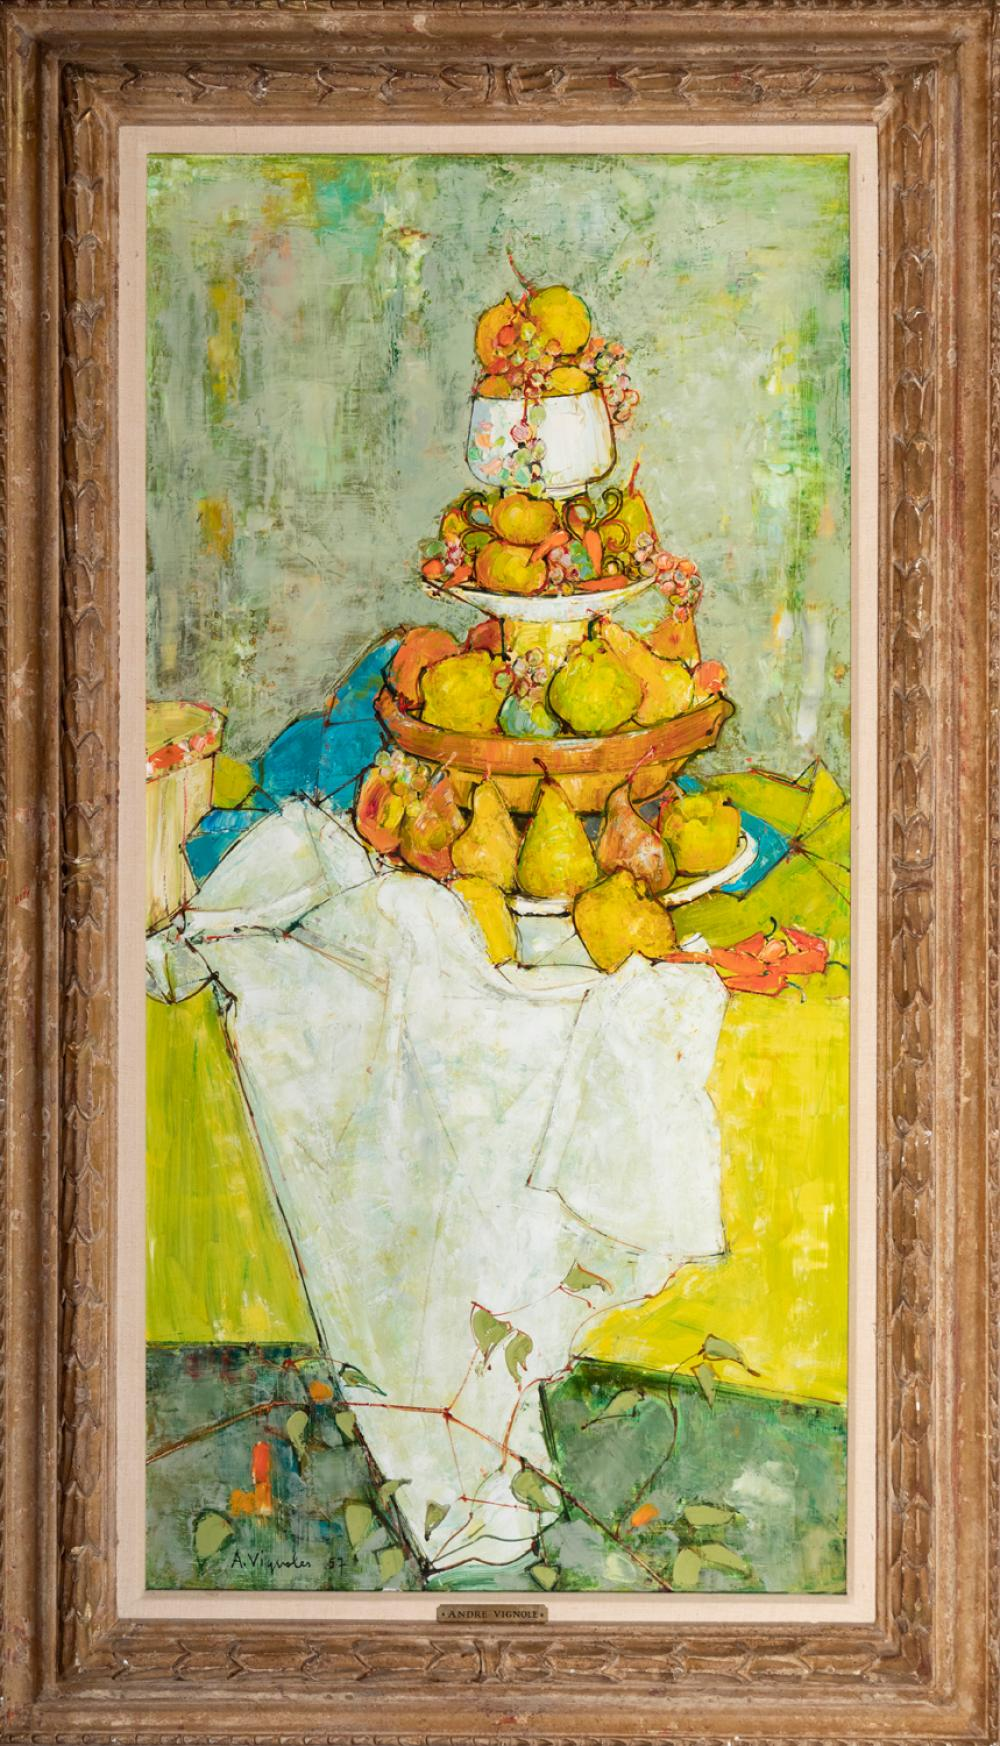 Andre Vignoles, French (b. 1920), Still Life of Pears, 1957, oil on canvas, 39 x 20 inches